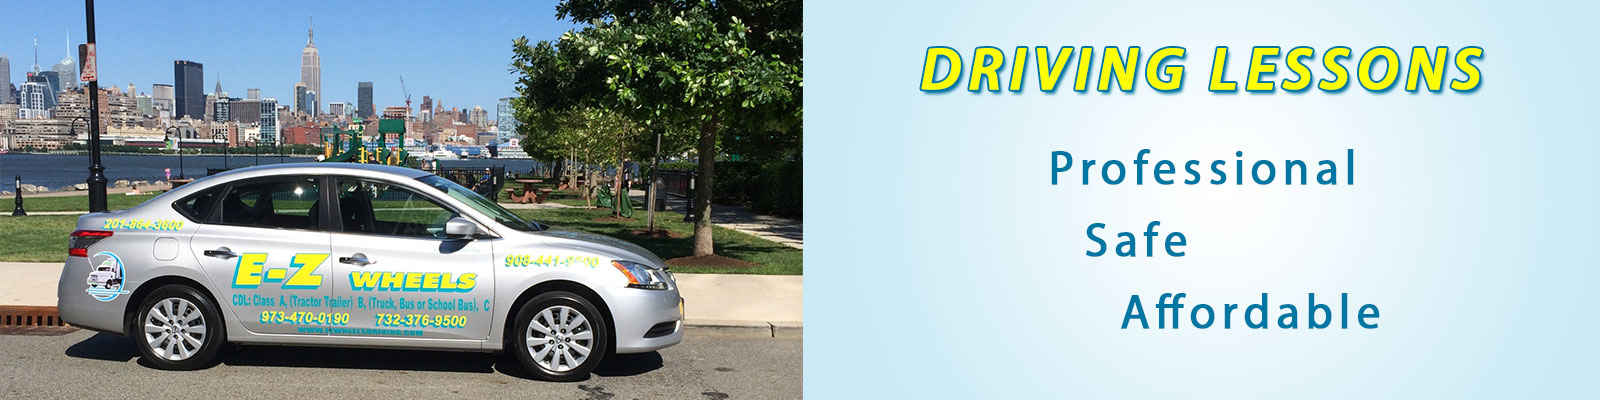 Driving school nj